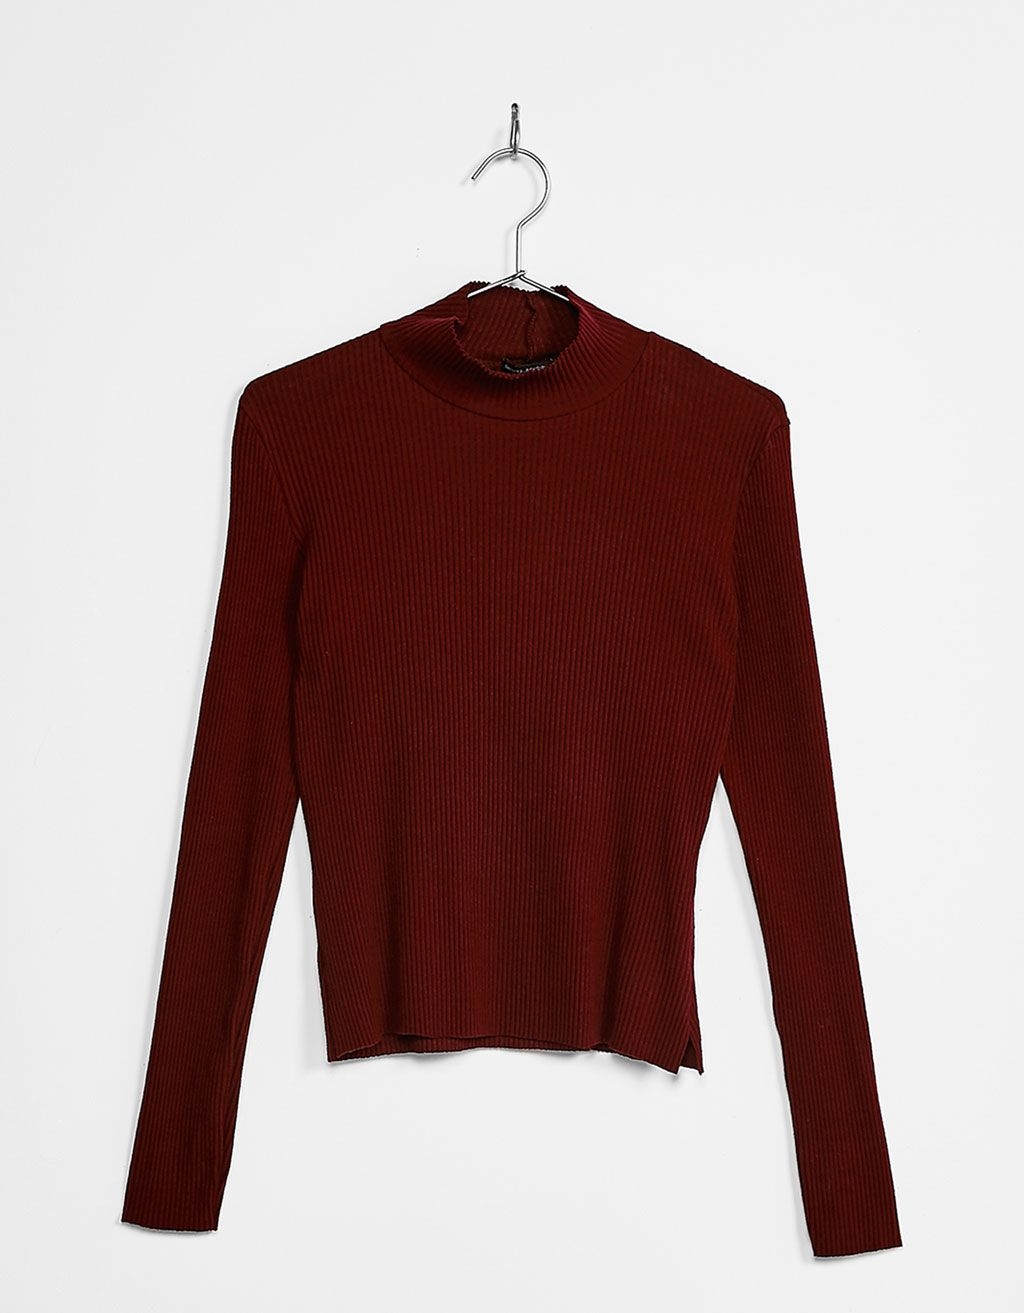 1158e92602 Long sleeved high neck top. Discover this and many more items in Bershka  with new products every week